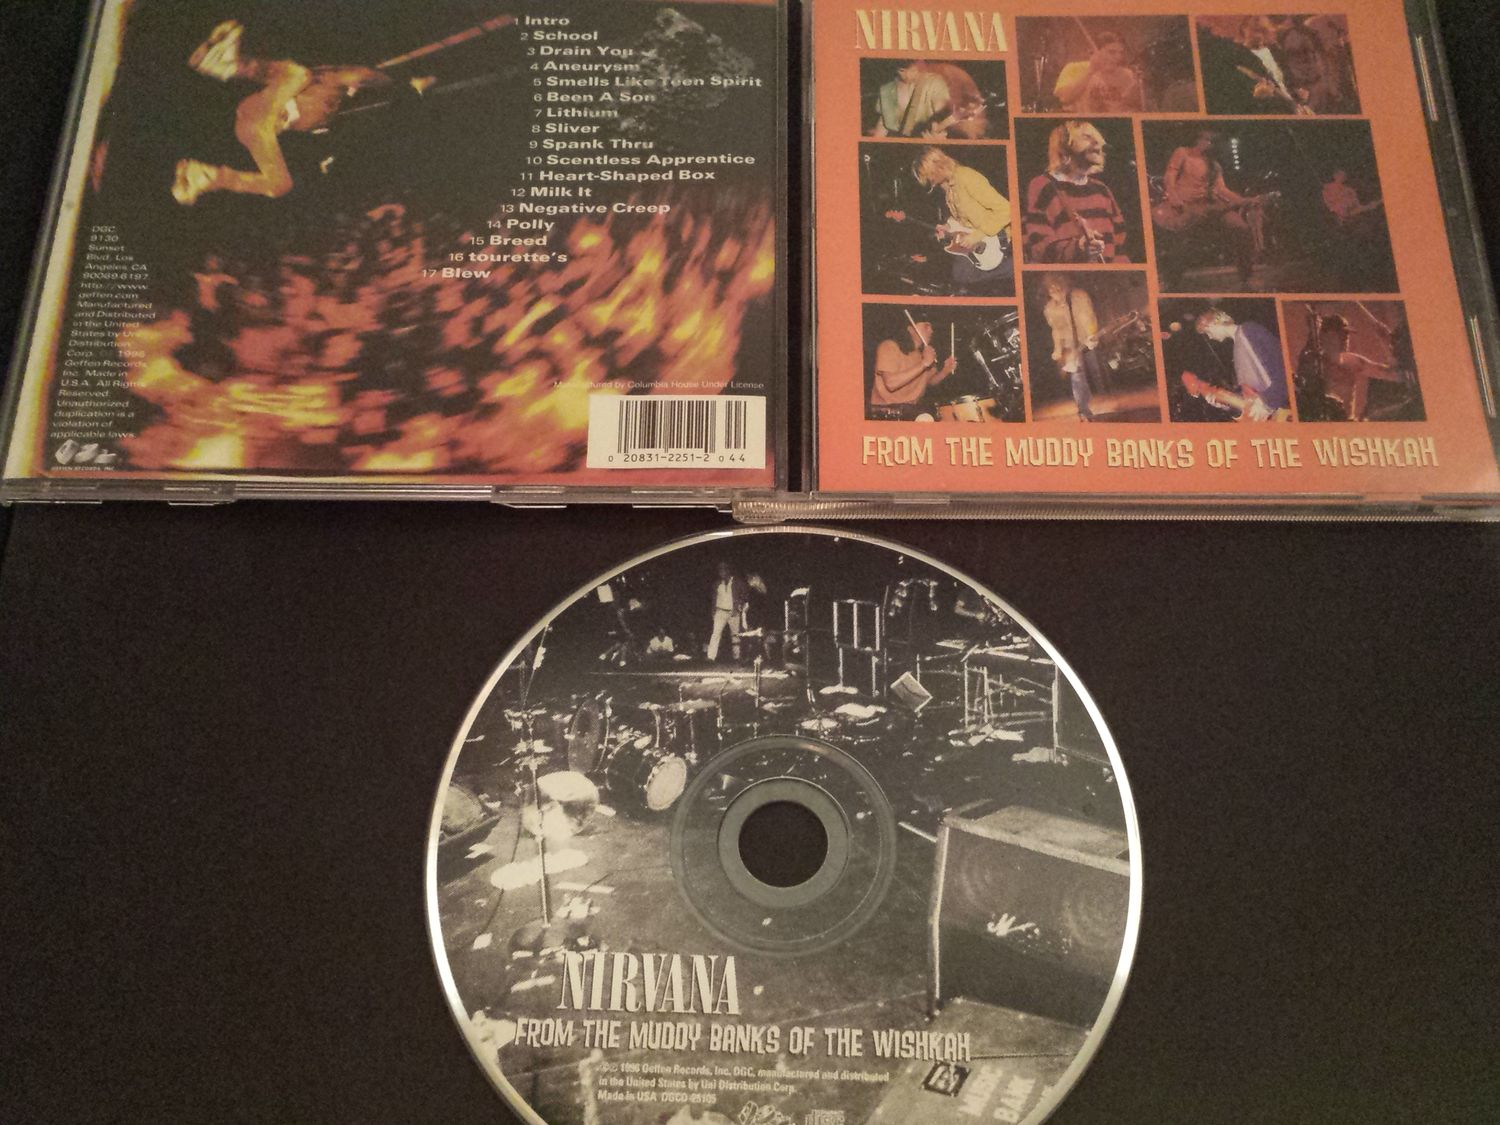 Nirvana - From The Muddy Banks Of The Wishkah Record